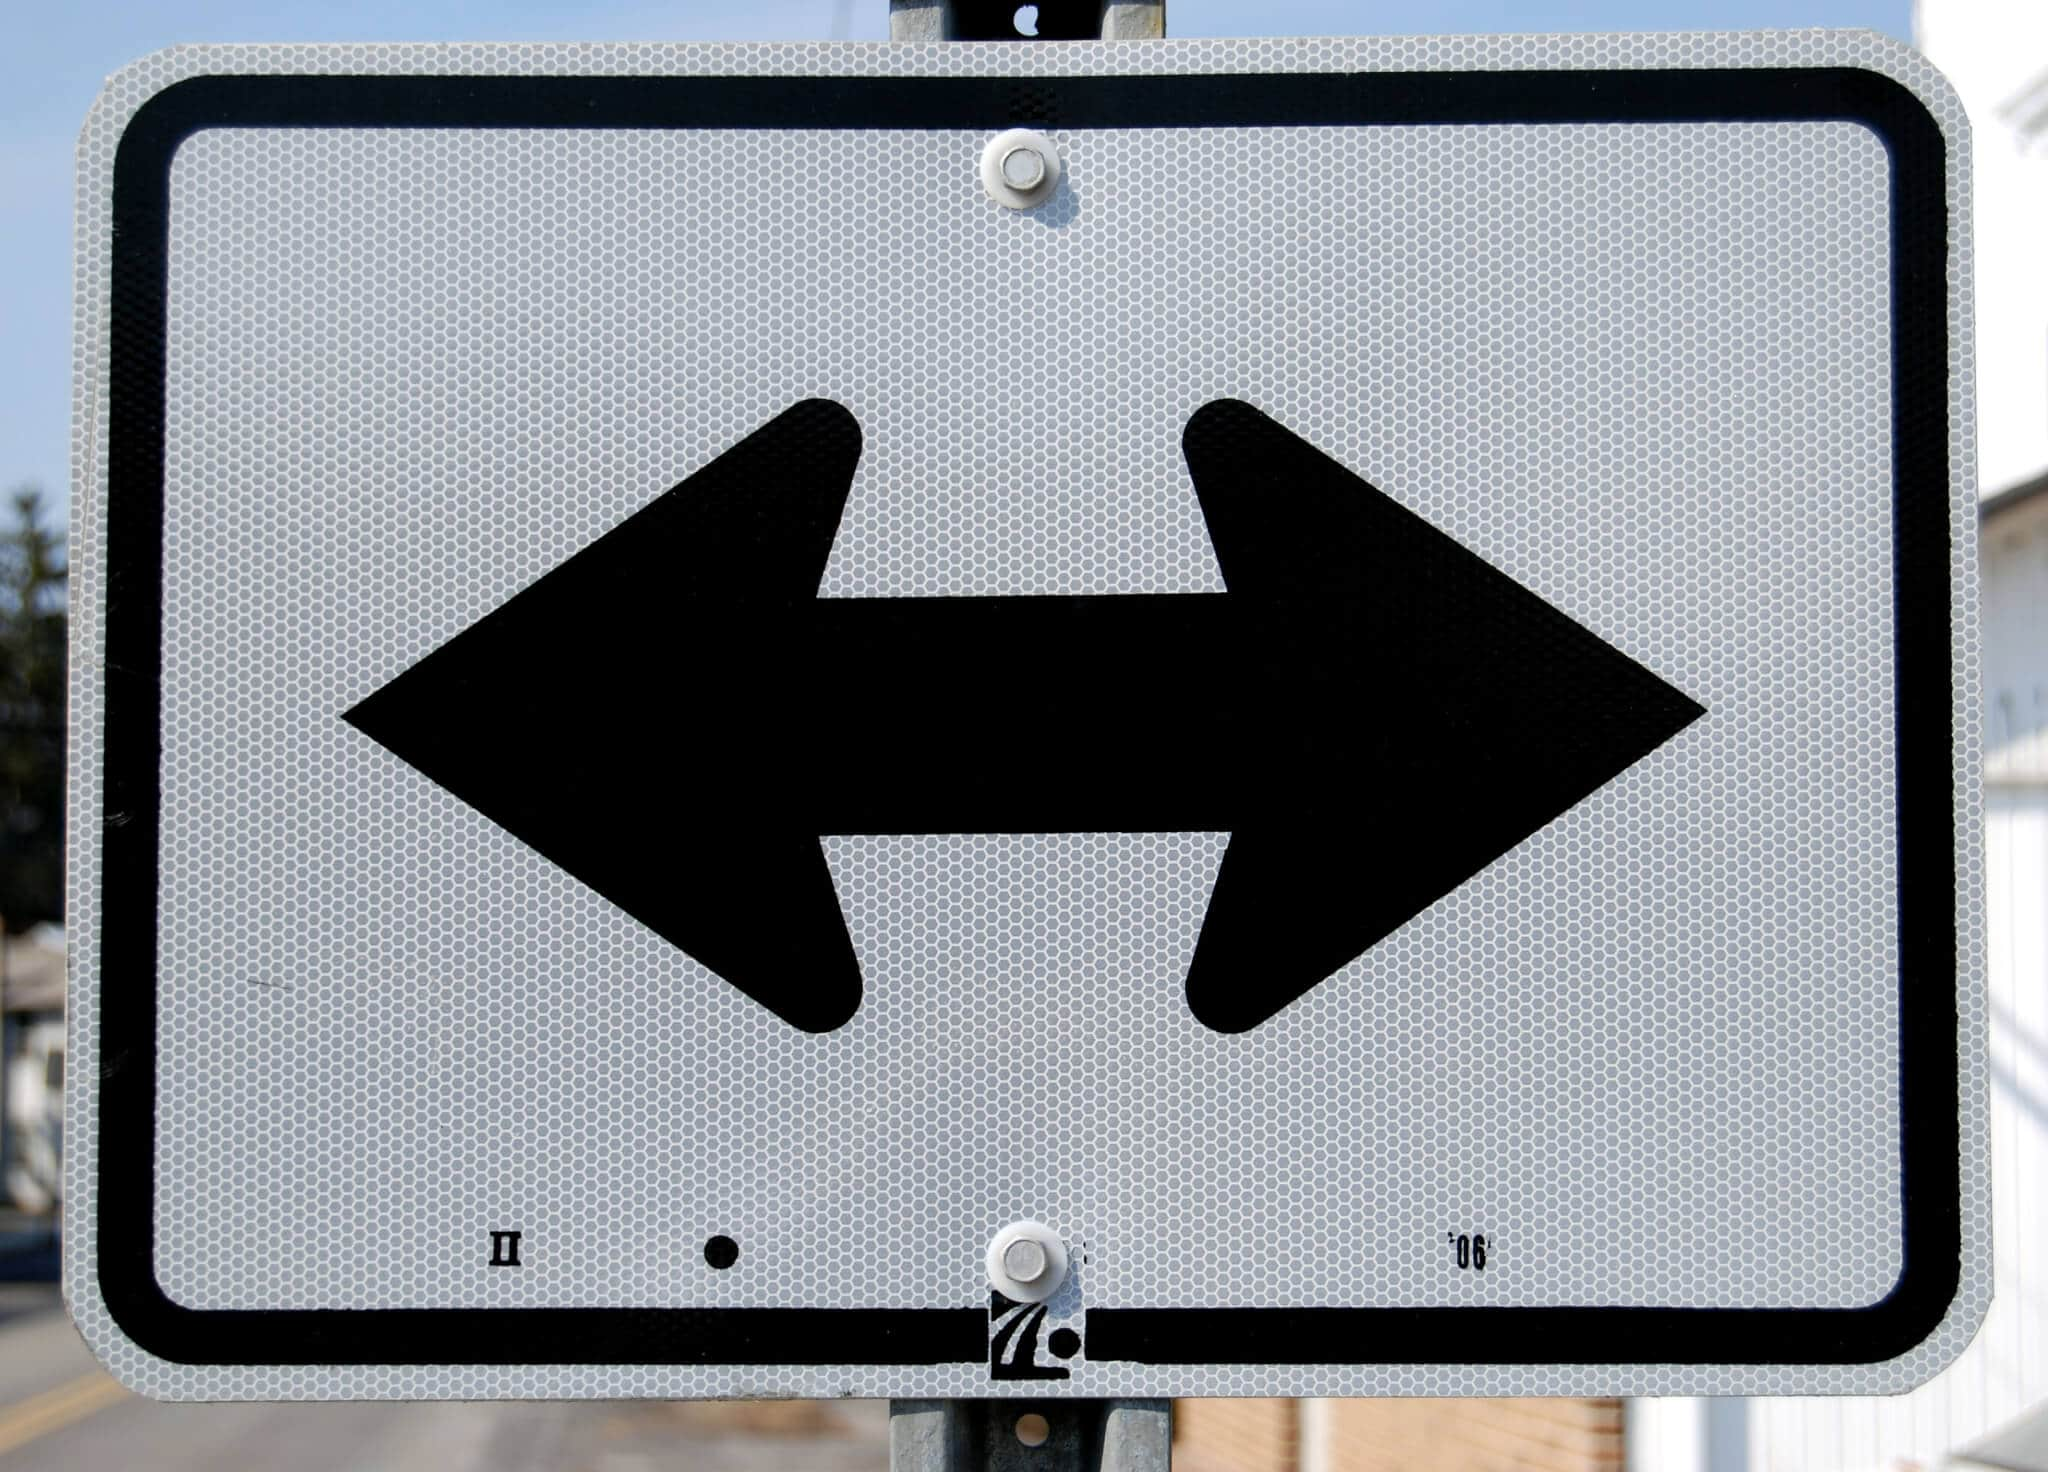 street sign with arrows pointing right and left